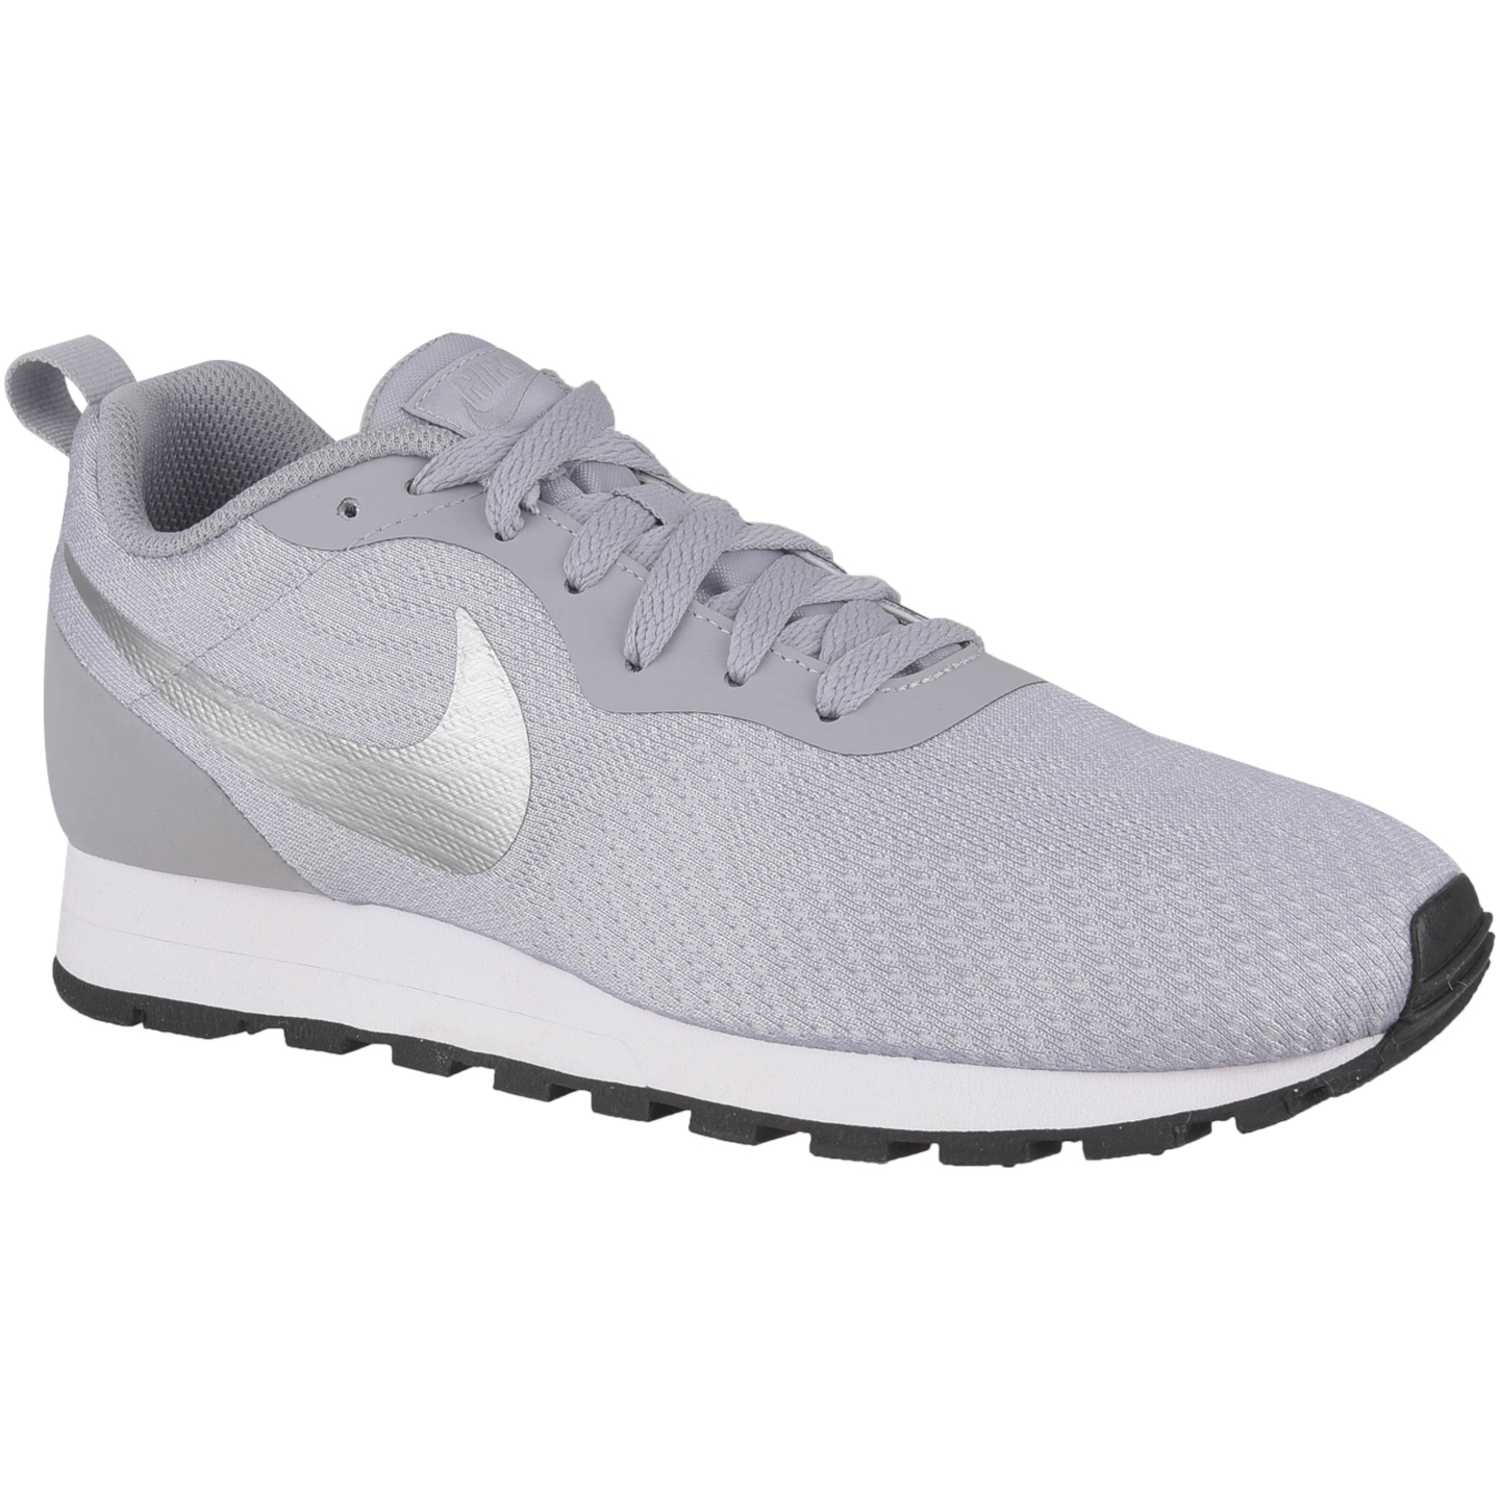 Nike wmns nike md runner 2 eng mesh Gris Walking